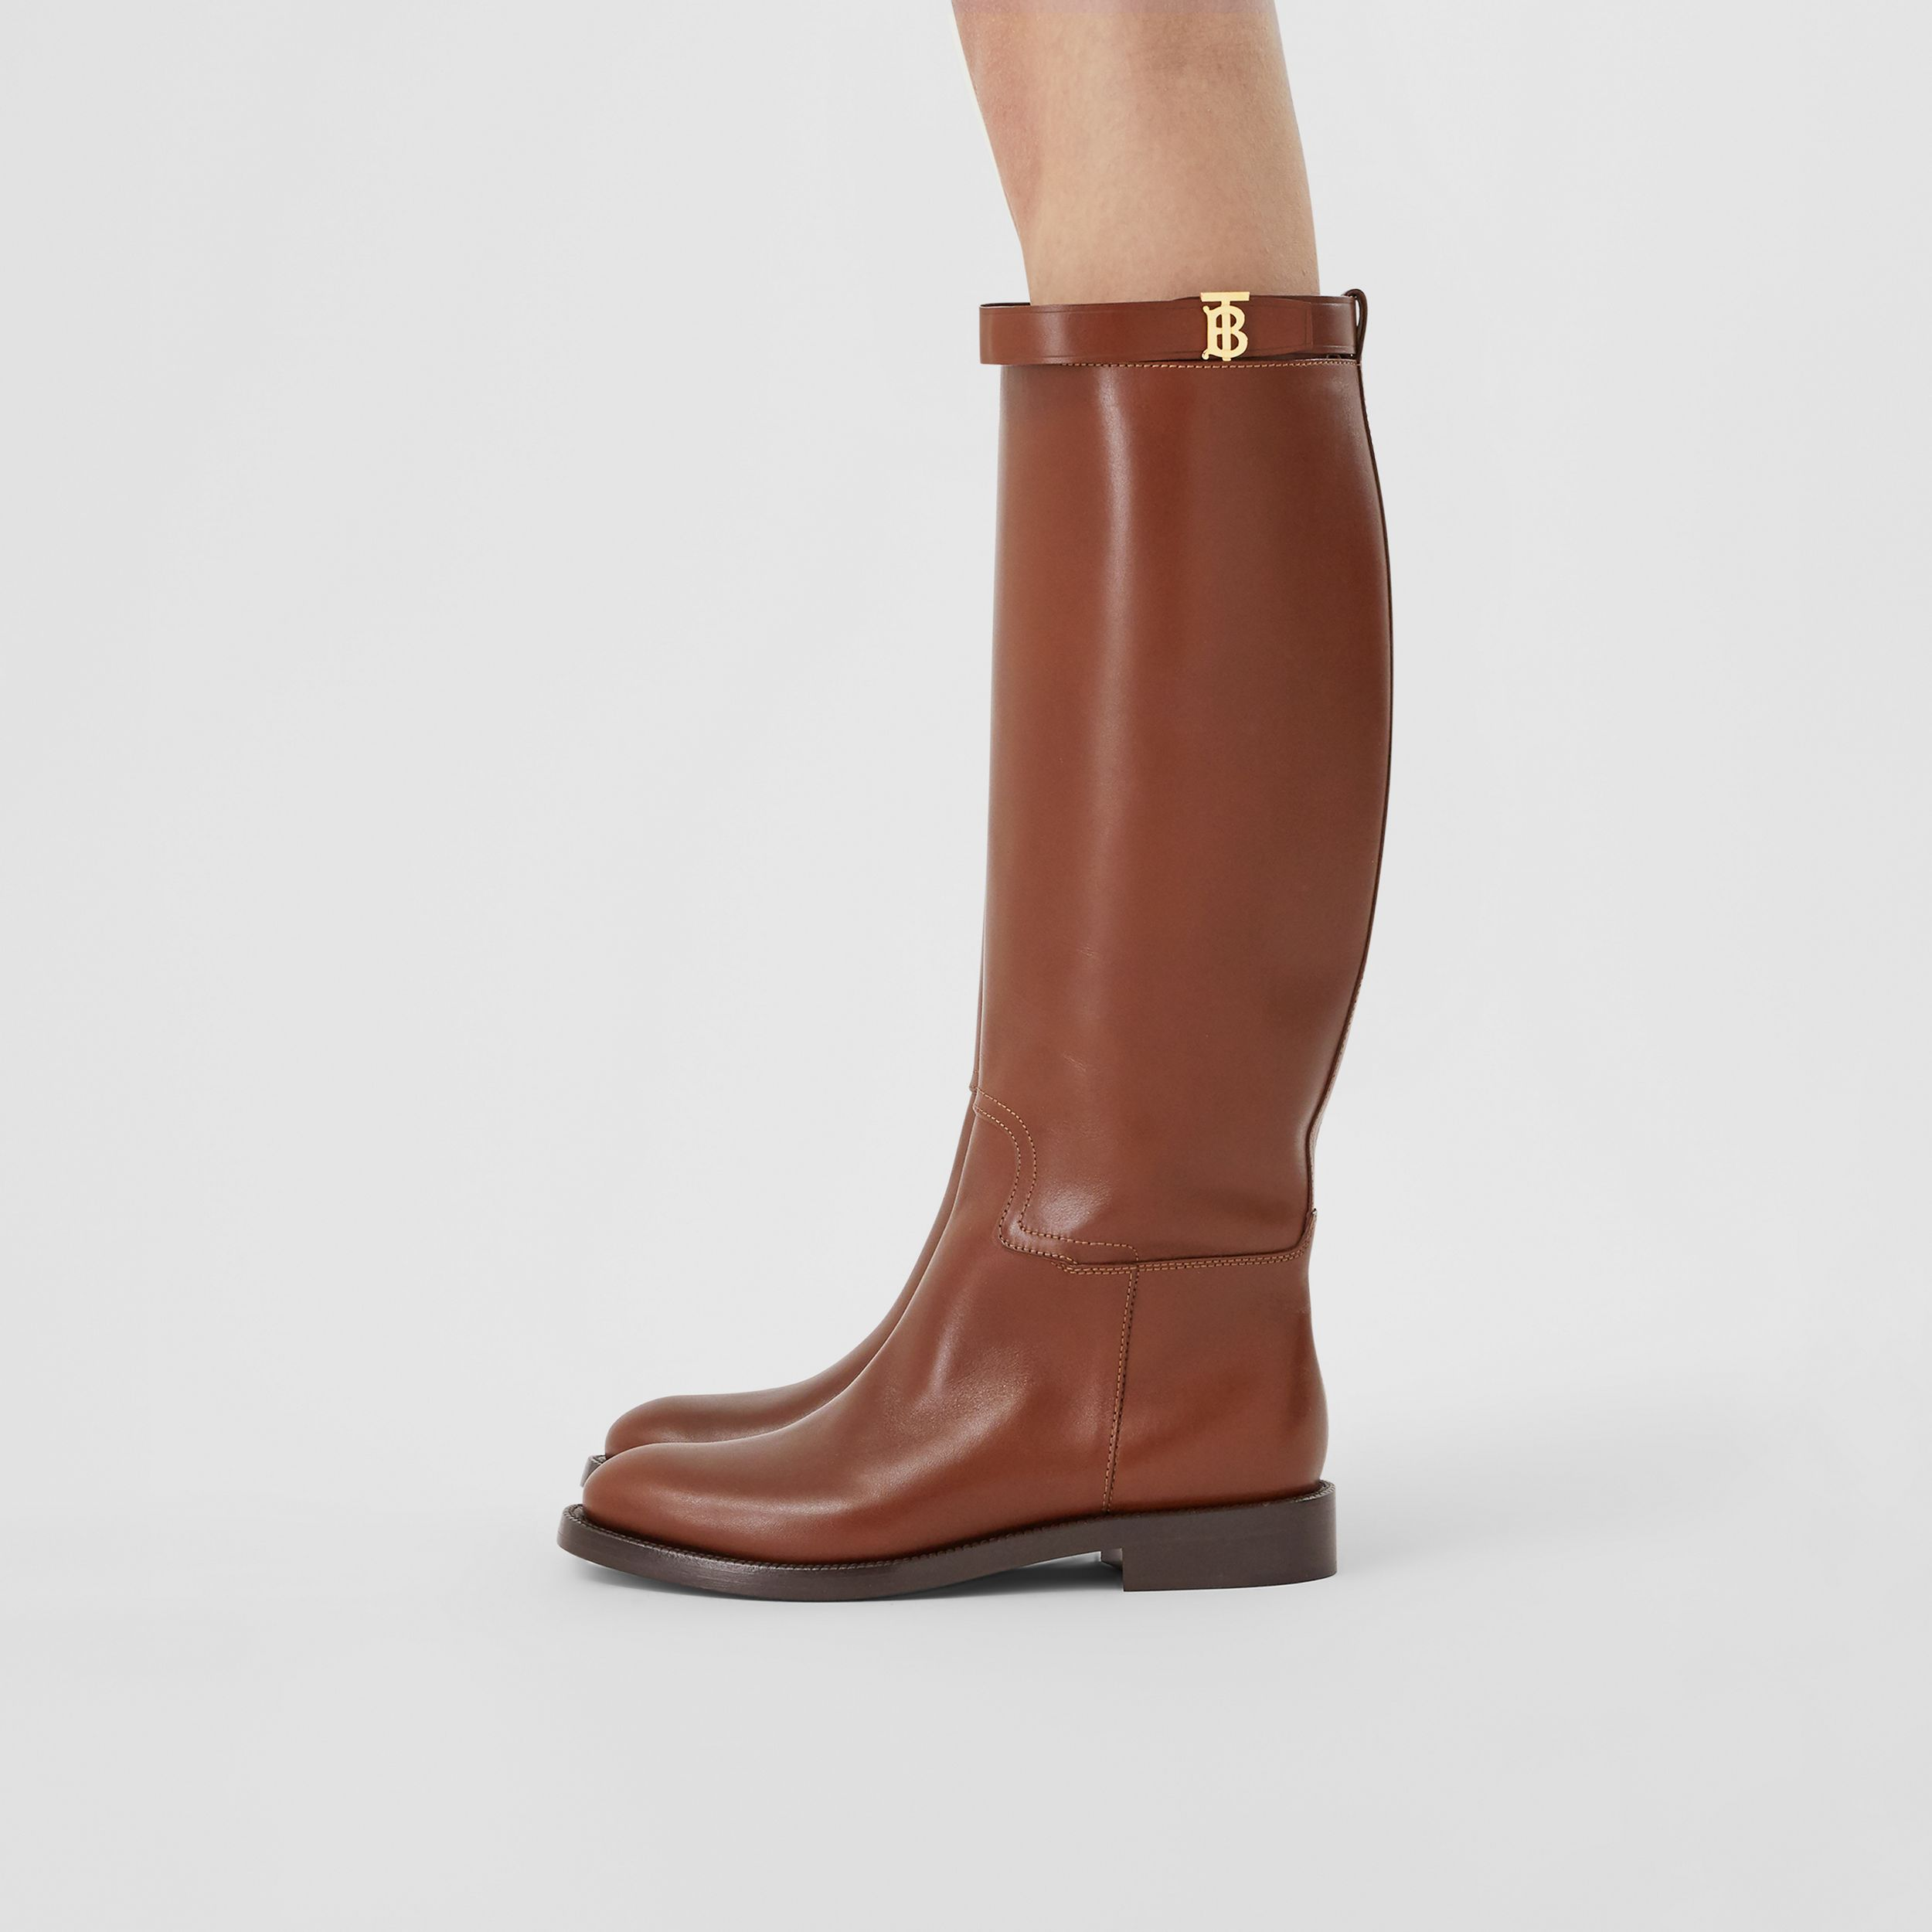 Monogram Motif Leather Knee-high Boots in Tan - Women | Burberry Australia - 3